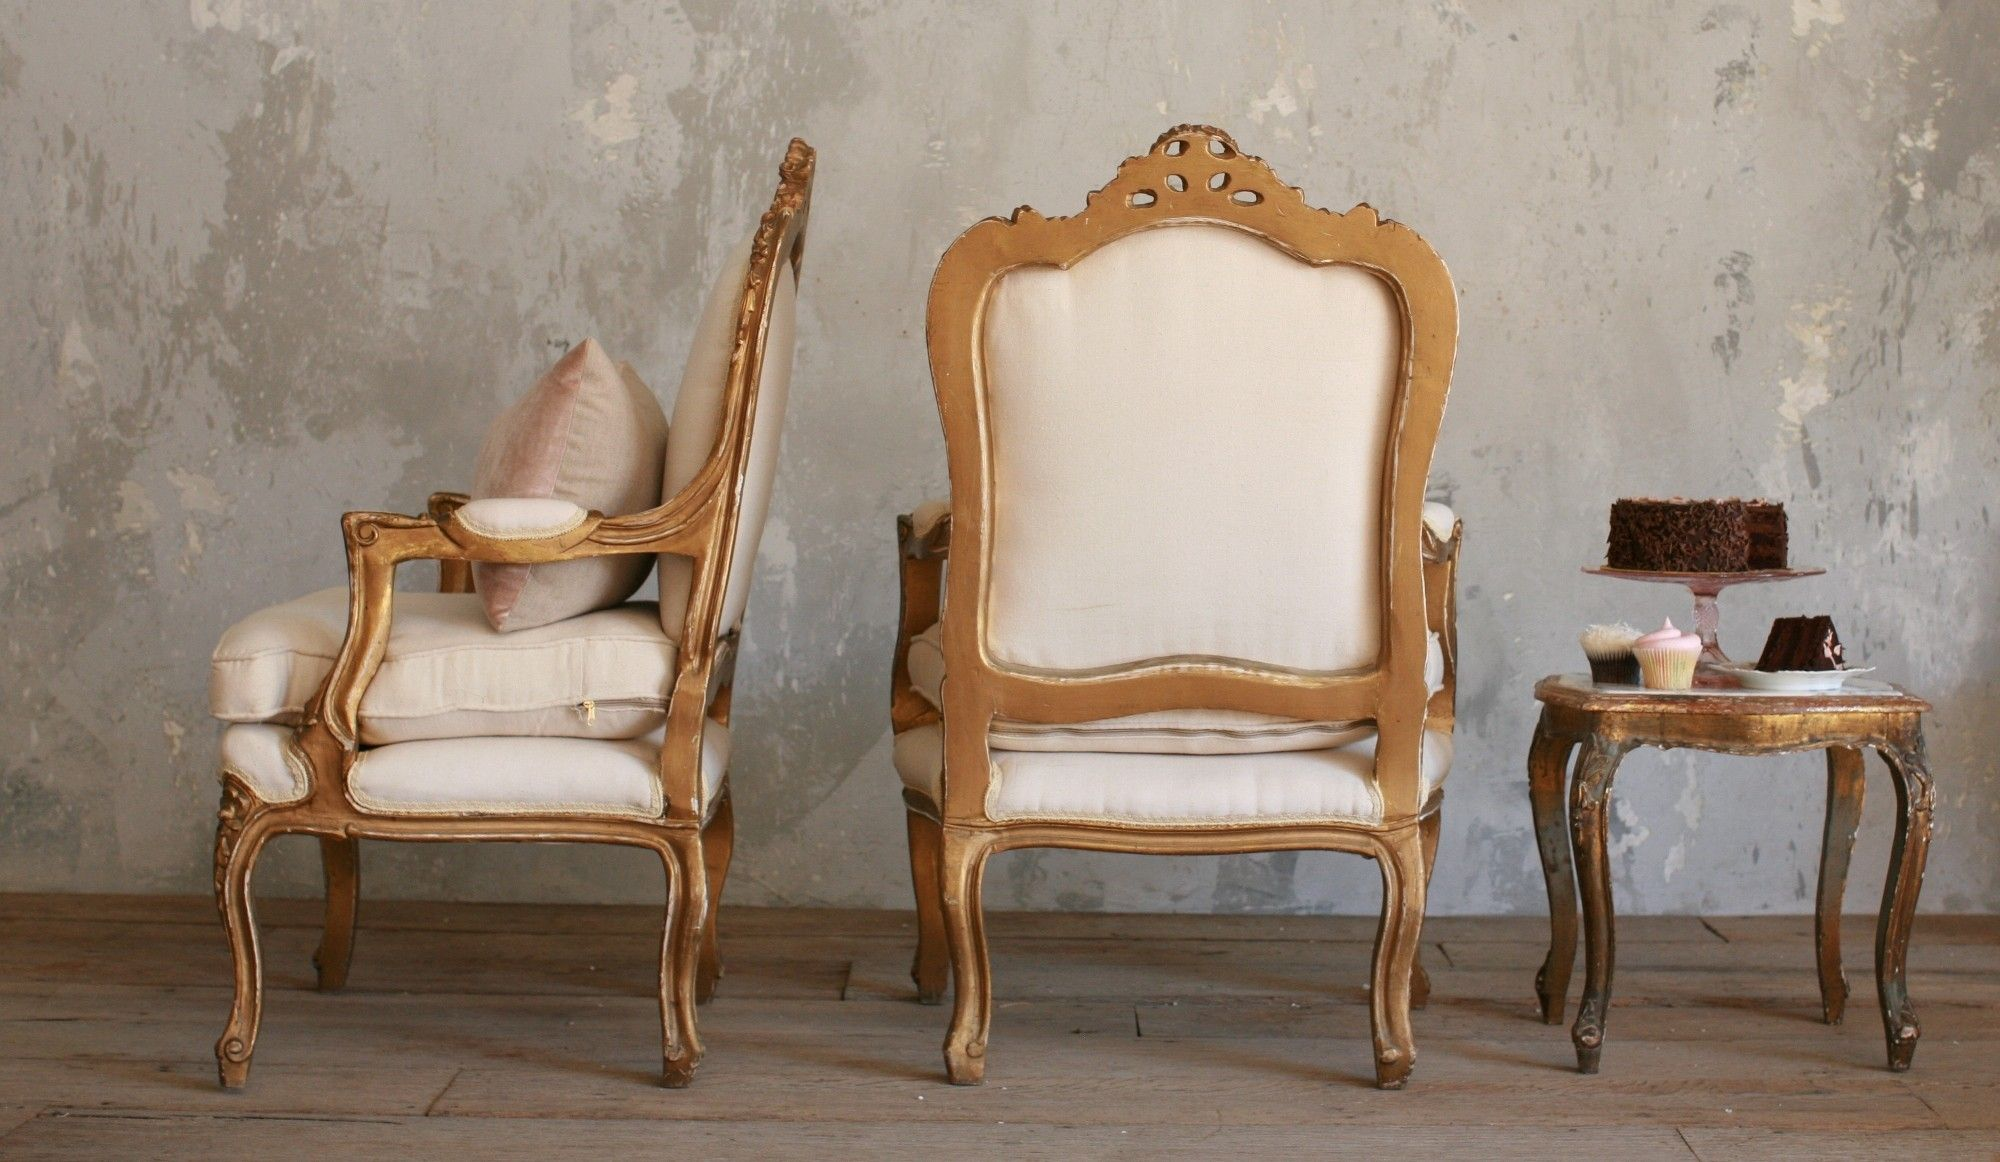 Stunning gold gilded arm chairs with wreath ornamentation at the top, legs, and center bottom. The upholstery is cream canvas.